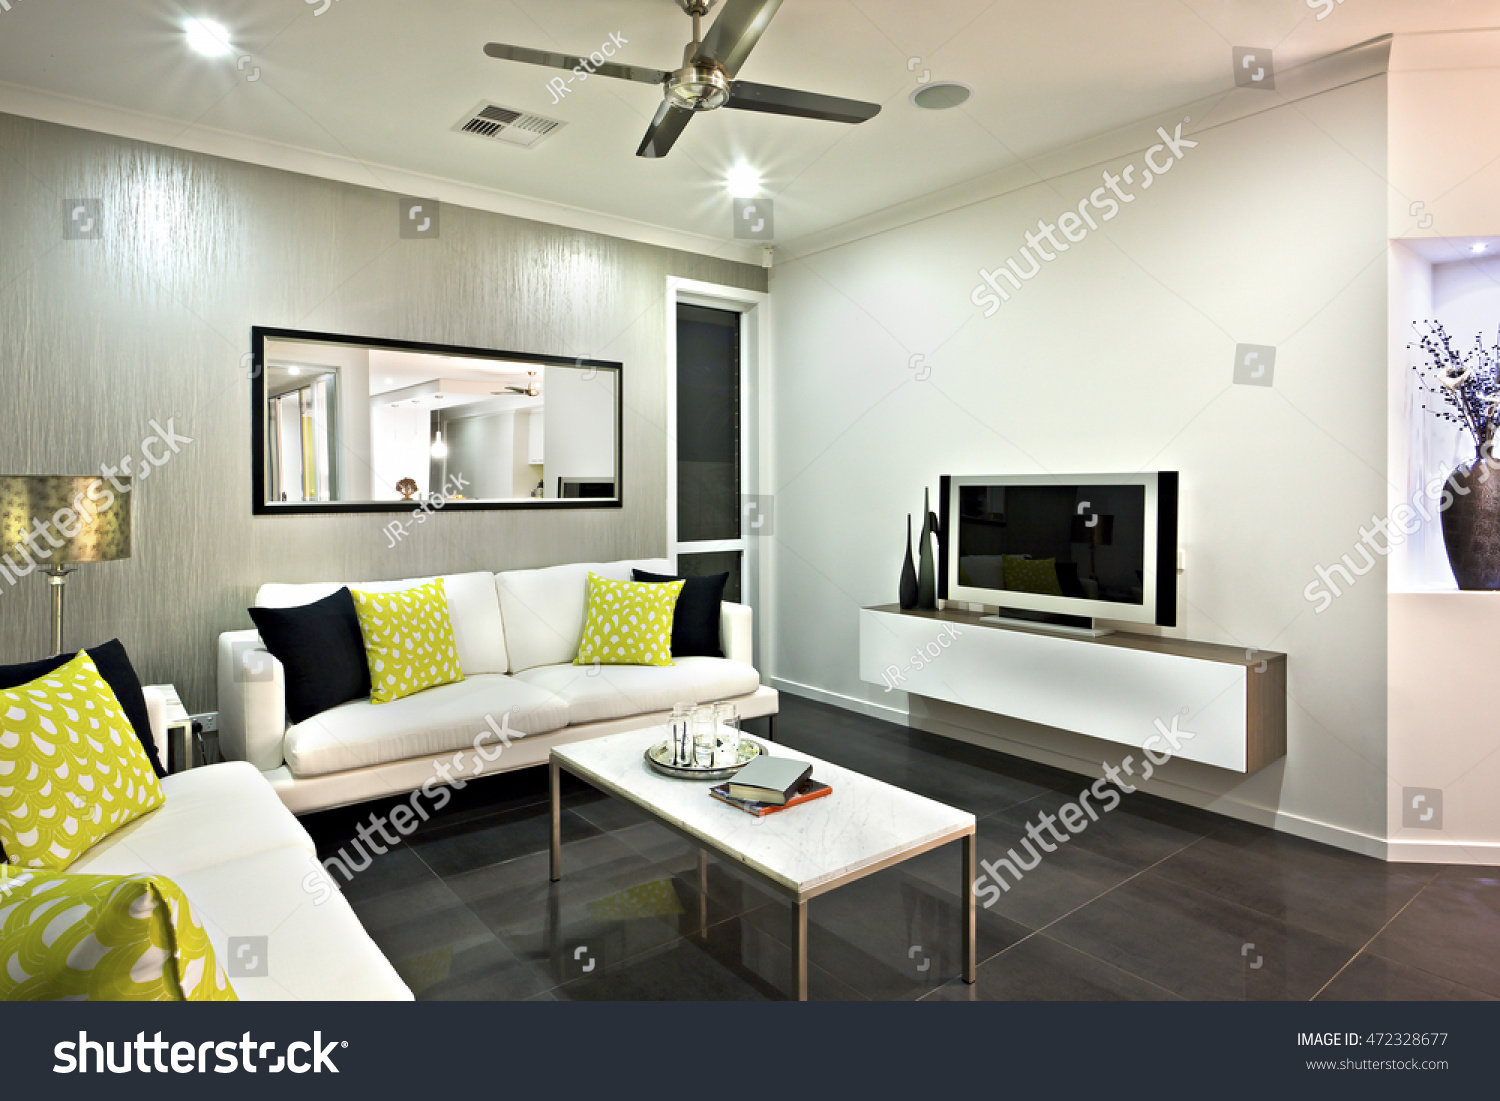 area mirror tables for living room. Living room area close up with a mirror and television under the fan on  ceiling Room Area Close Mirror Television Stock Photo 472328677